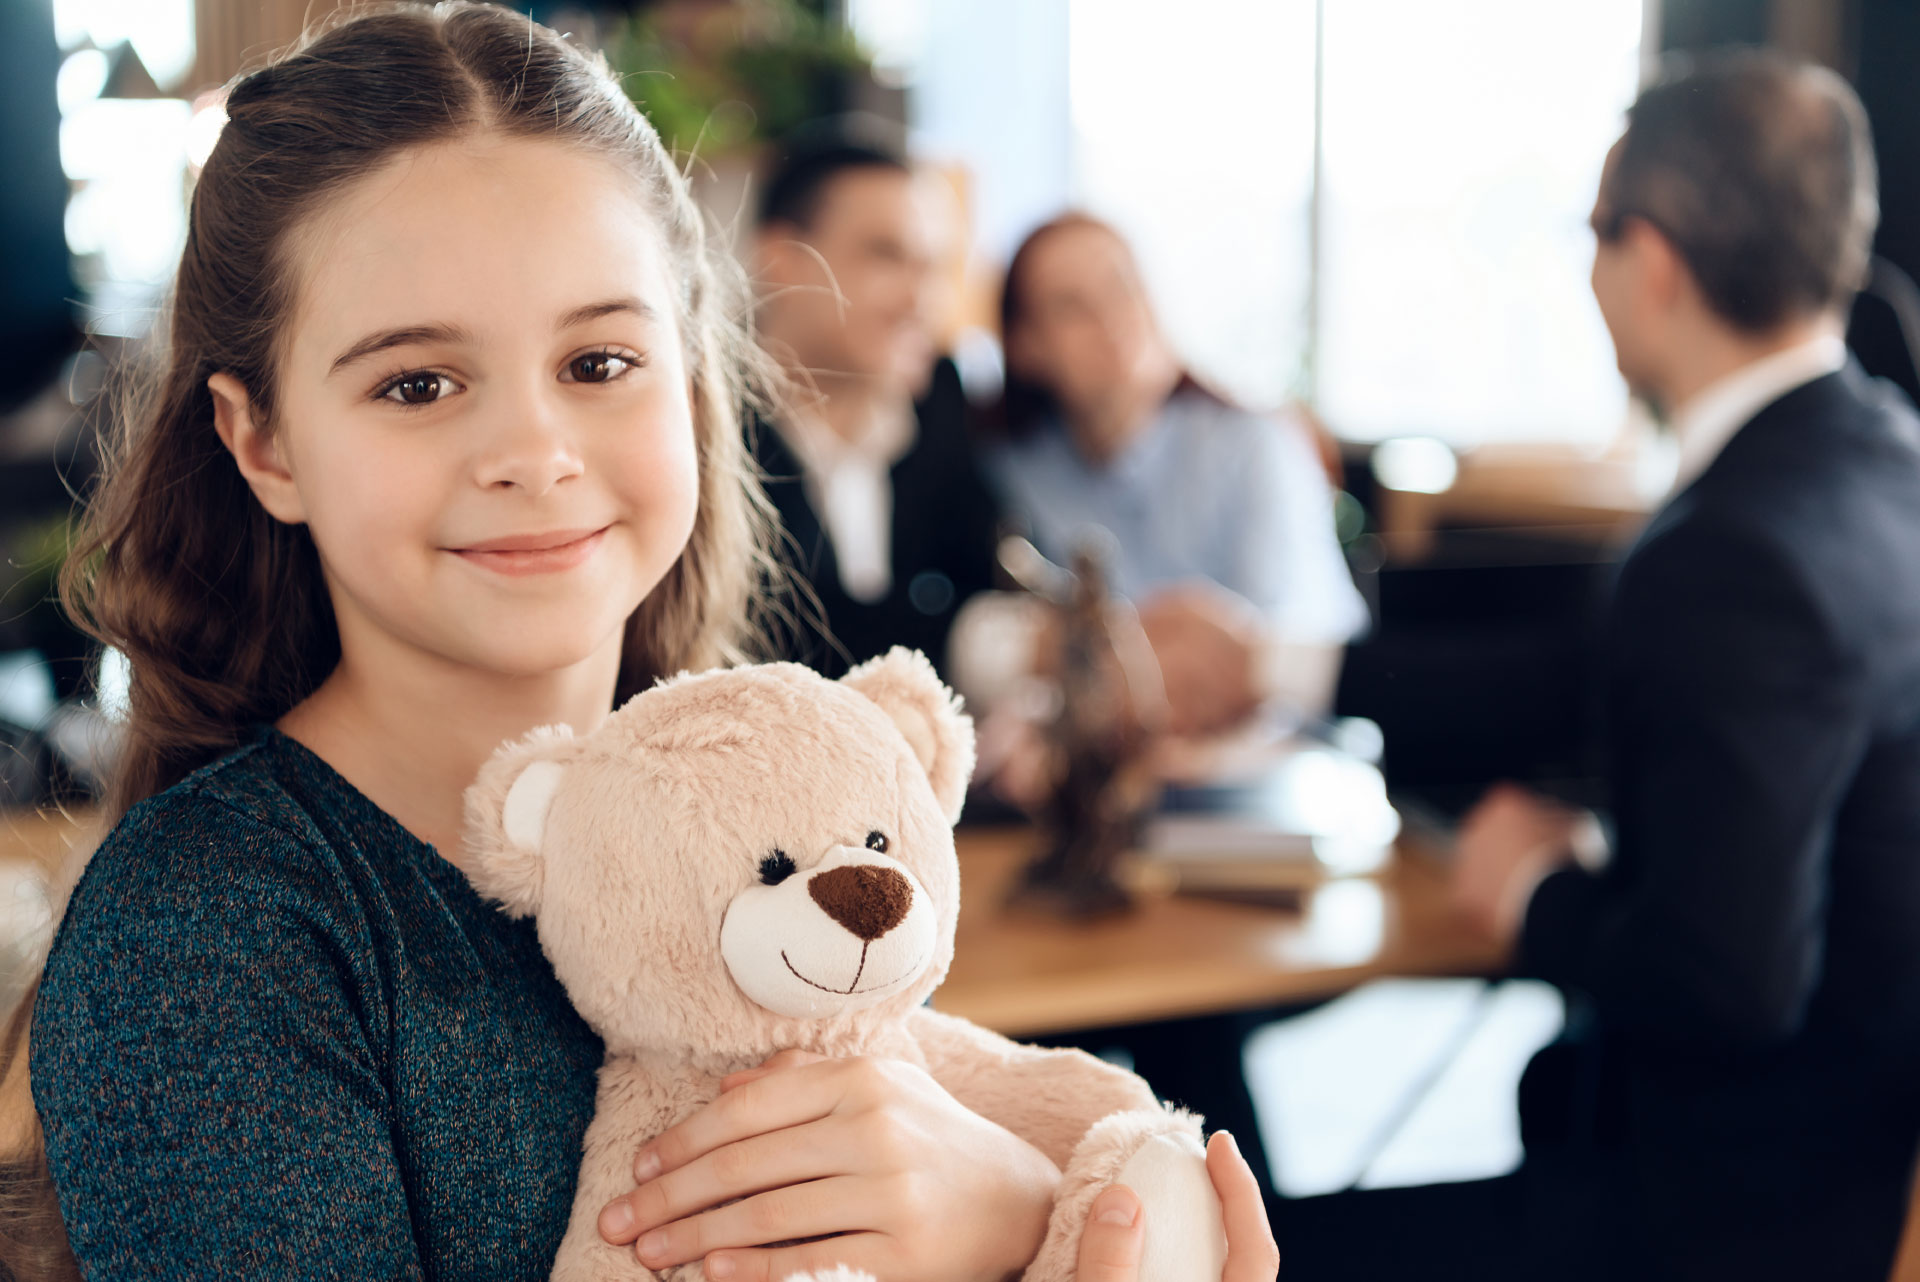 Image of a child holding a stuffed teddy bear